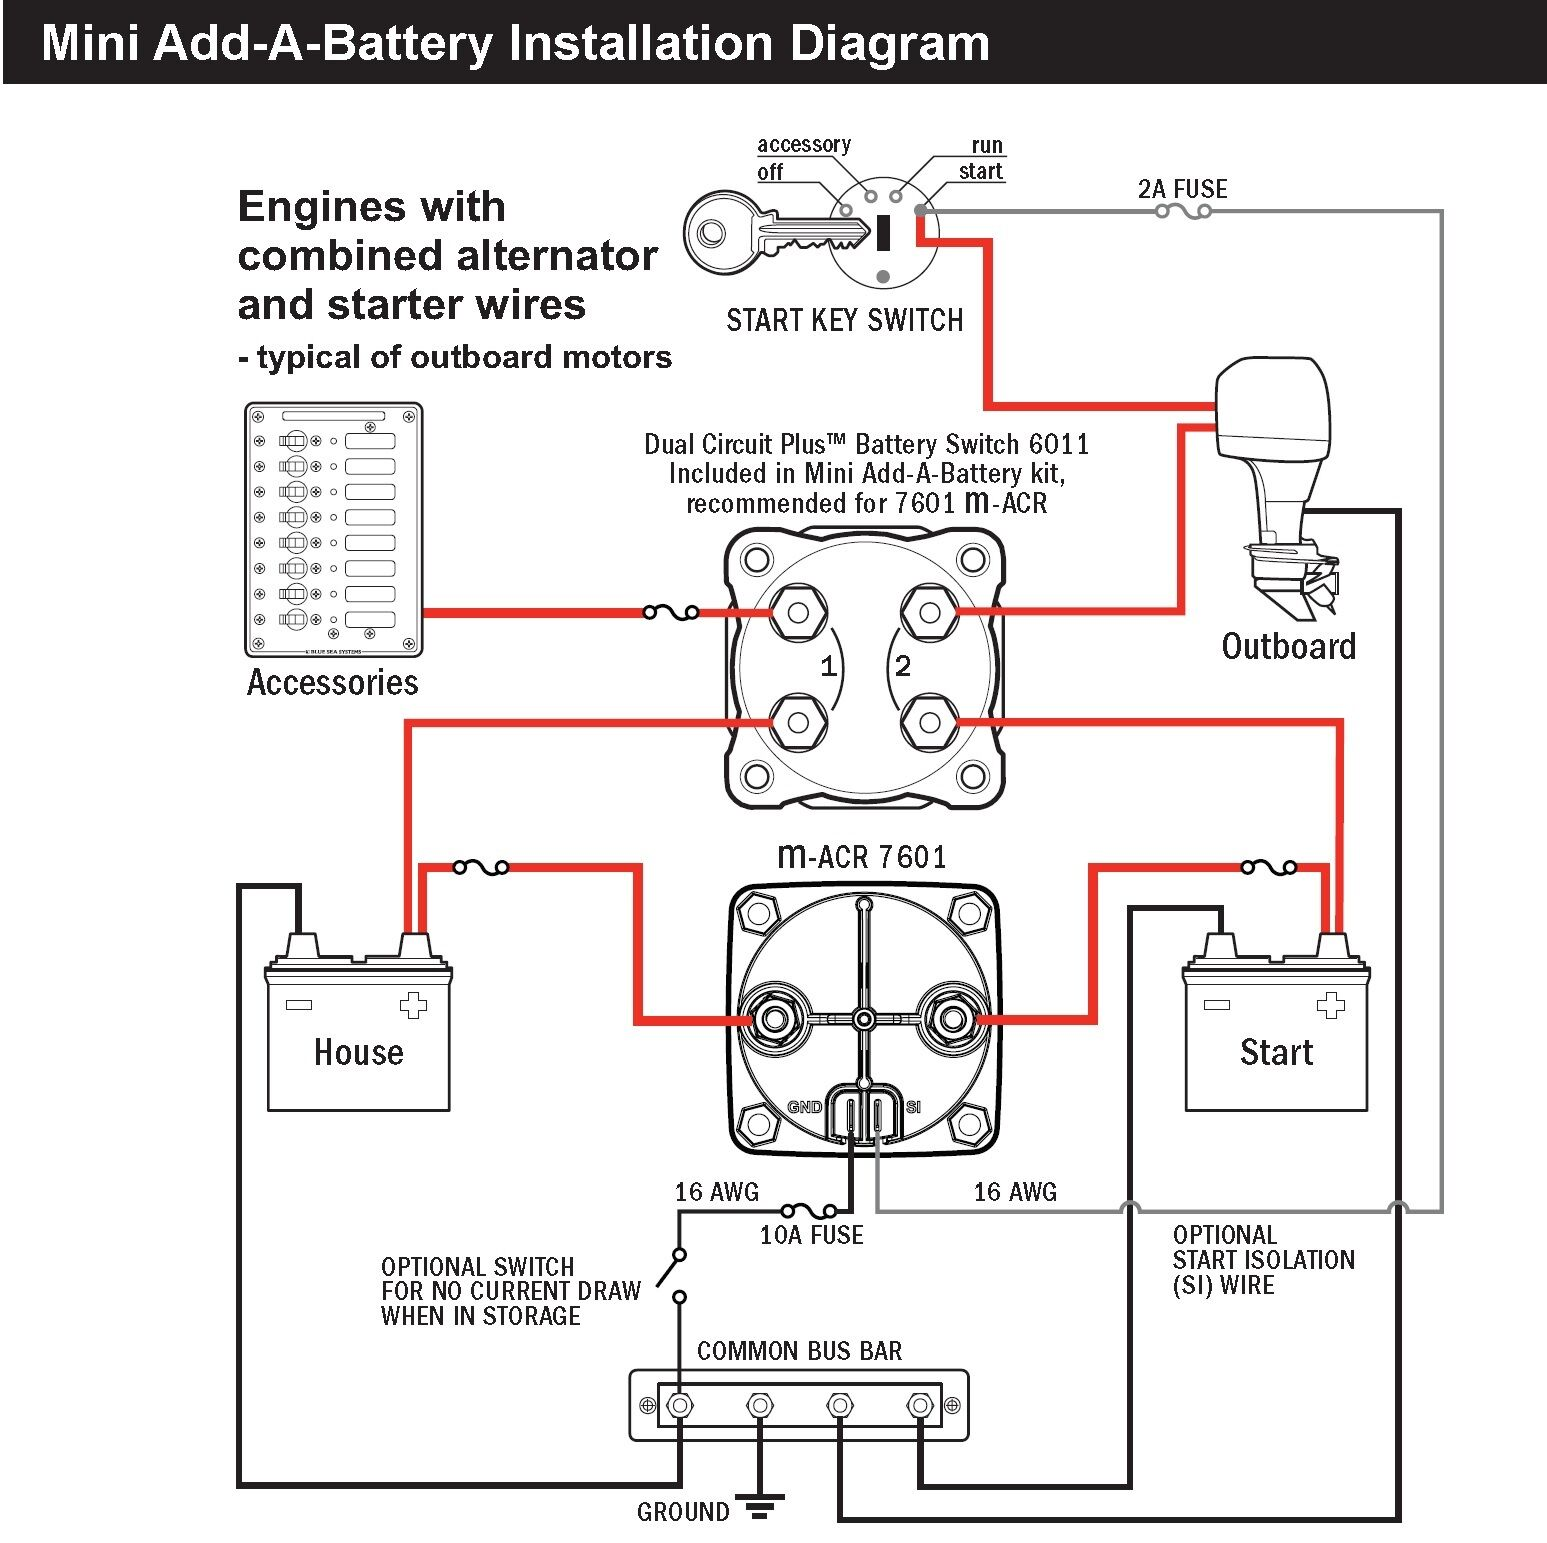 hight resolution of sea chaser wiring diagram wiring library led chaser circuit diagram furthermore 3 wire 240v gfci breaker wiring